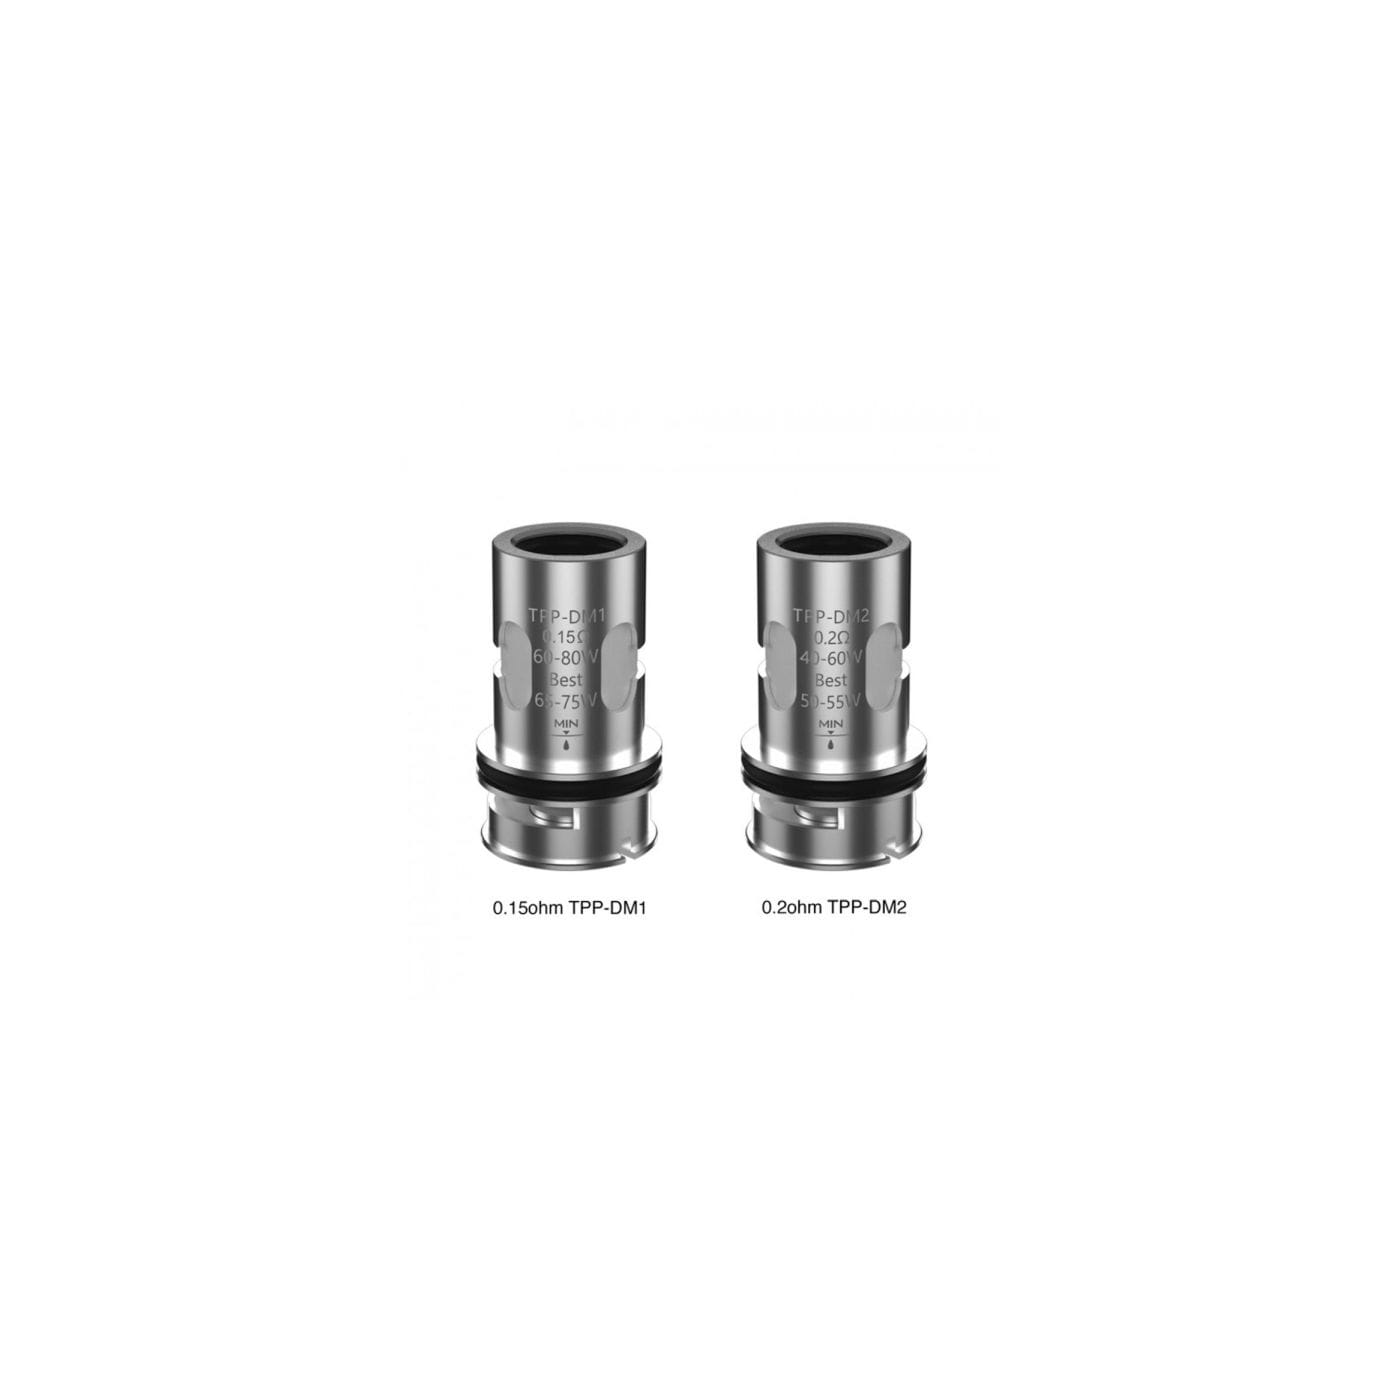 VooPoo TPP-DM Replacement Coil - 3 Pack